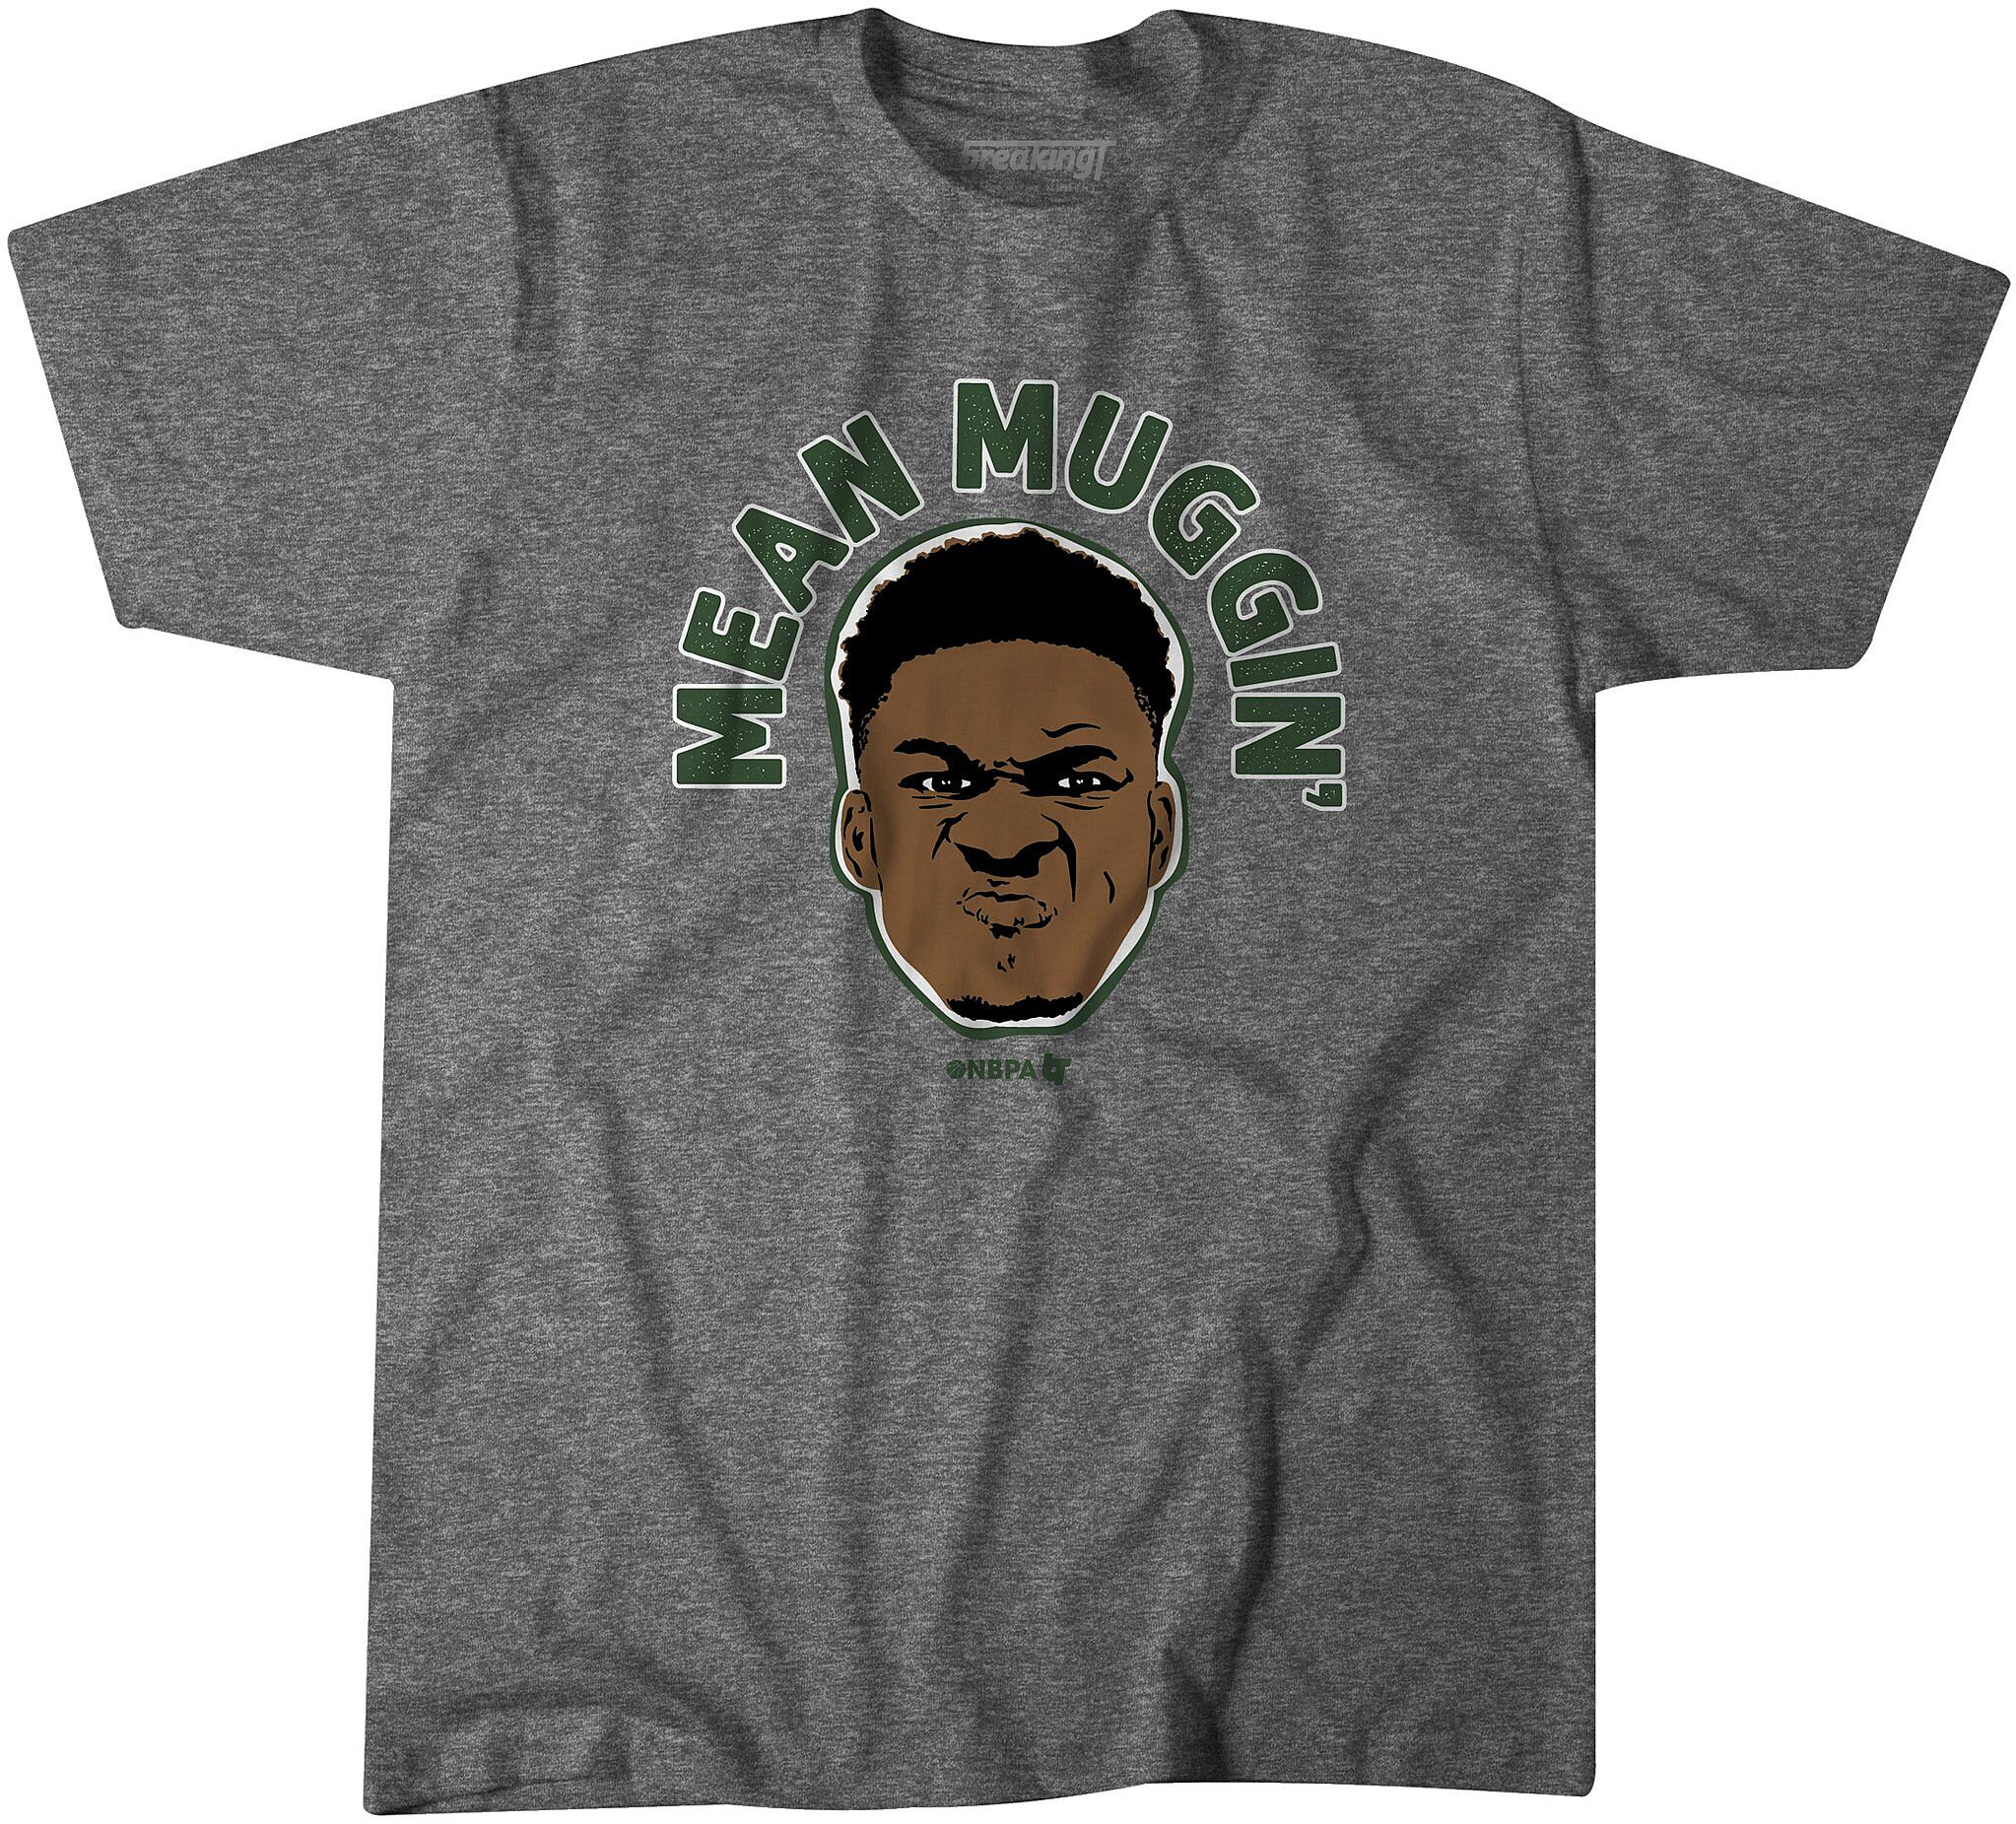 on sale 4abee effdc Milwaukee Bucks fans need this Giannis 'Mean Muggin' t-shirt